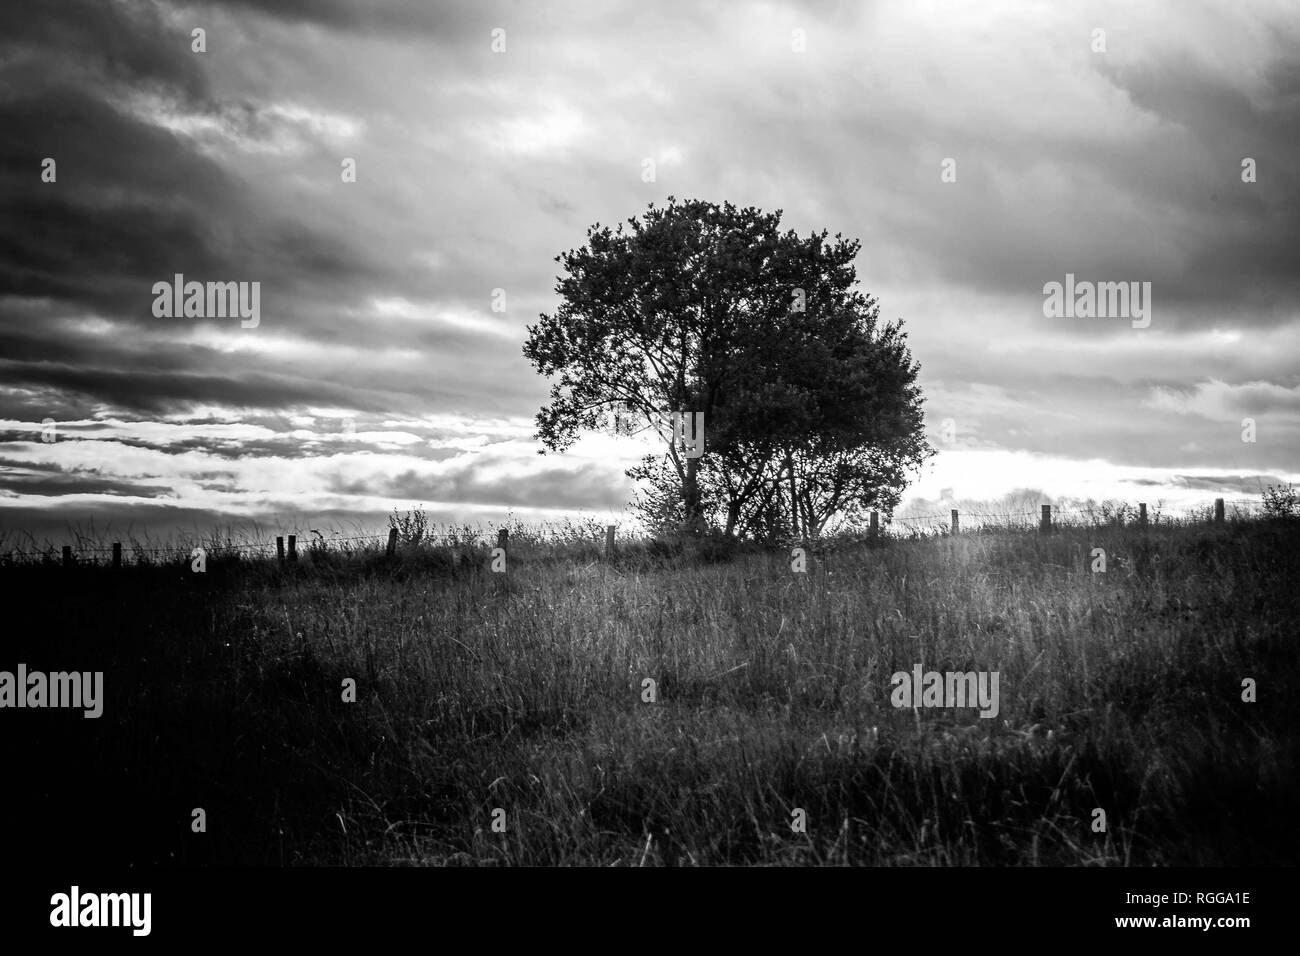 Dark landscape of an abstract tree in an open field with a cloudy bright sky. - Stock Image